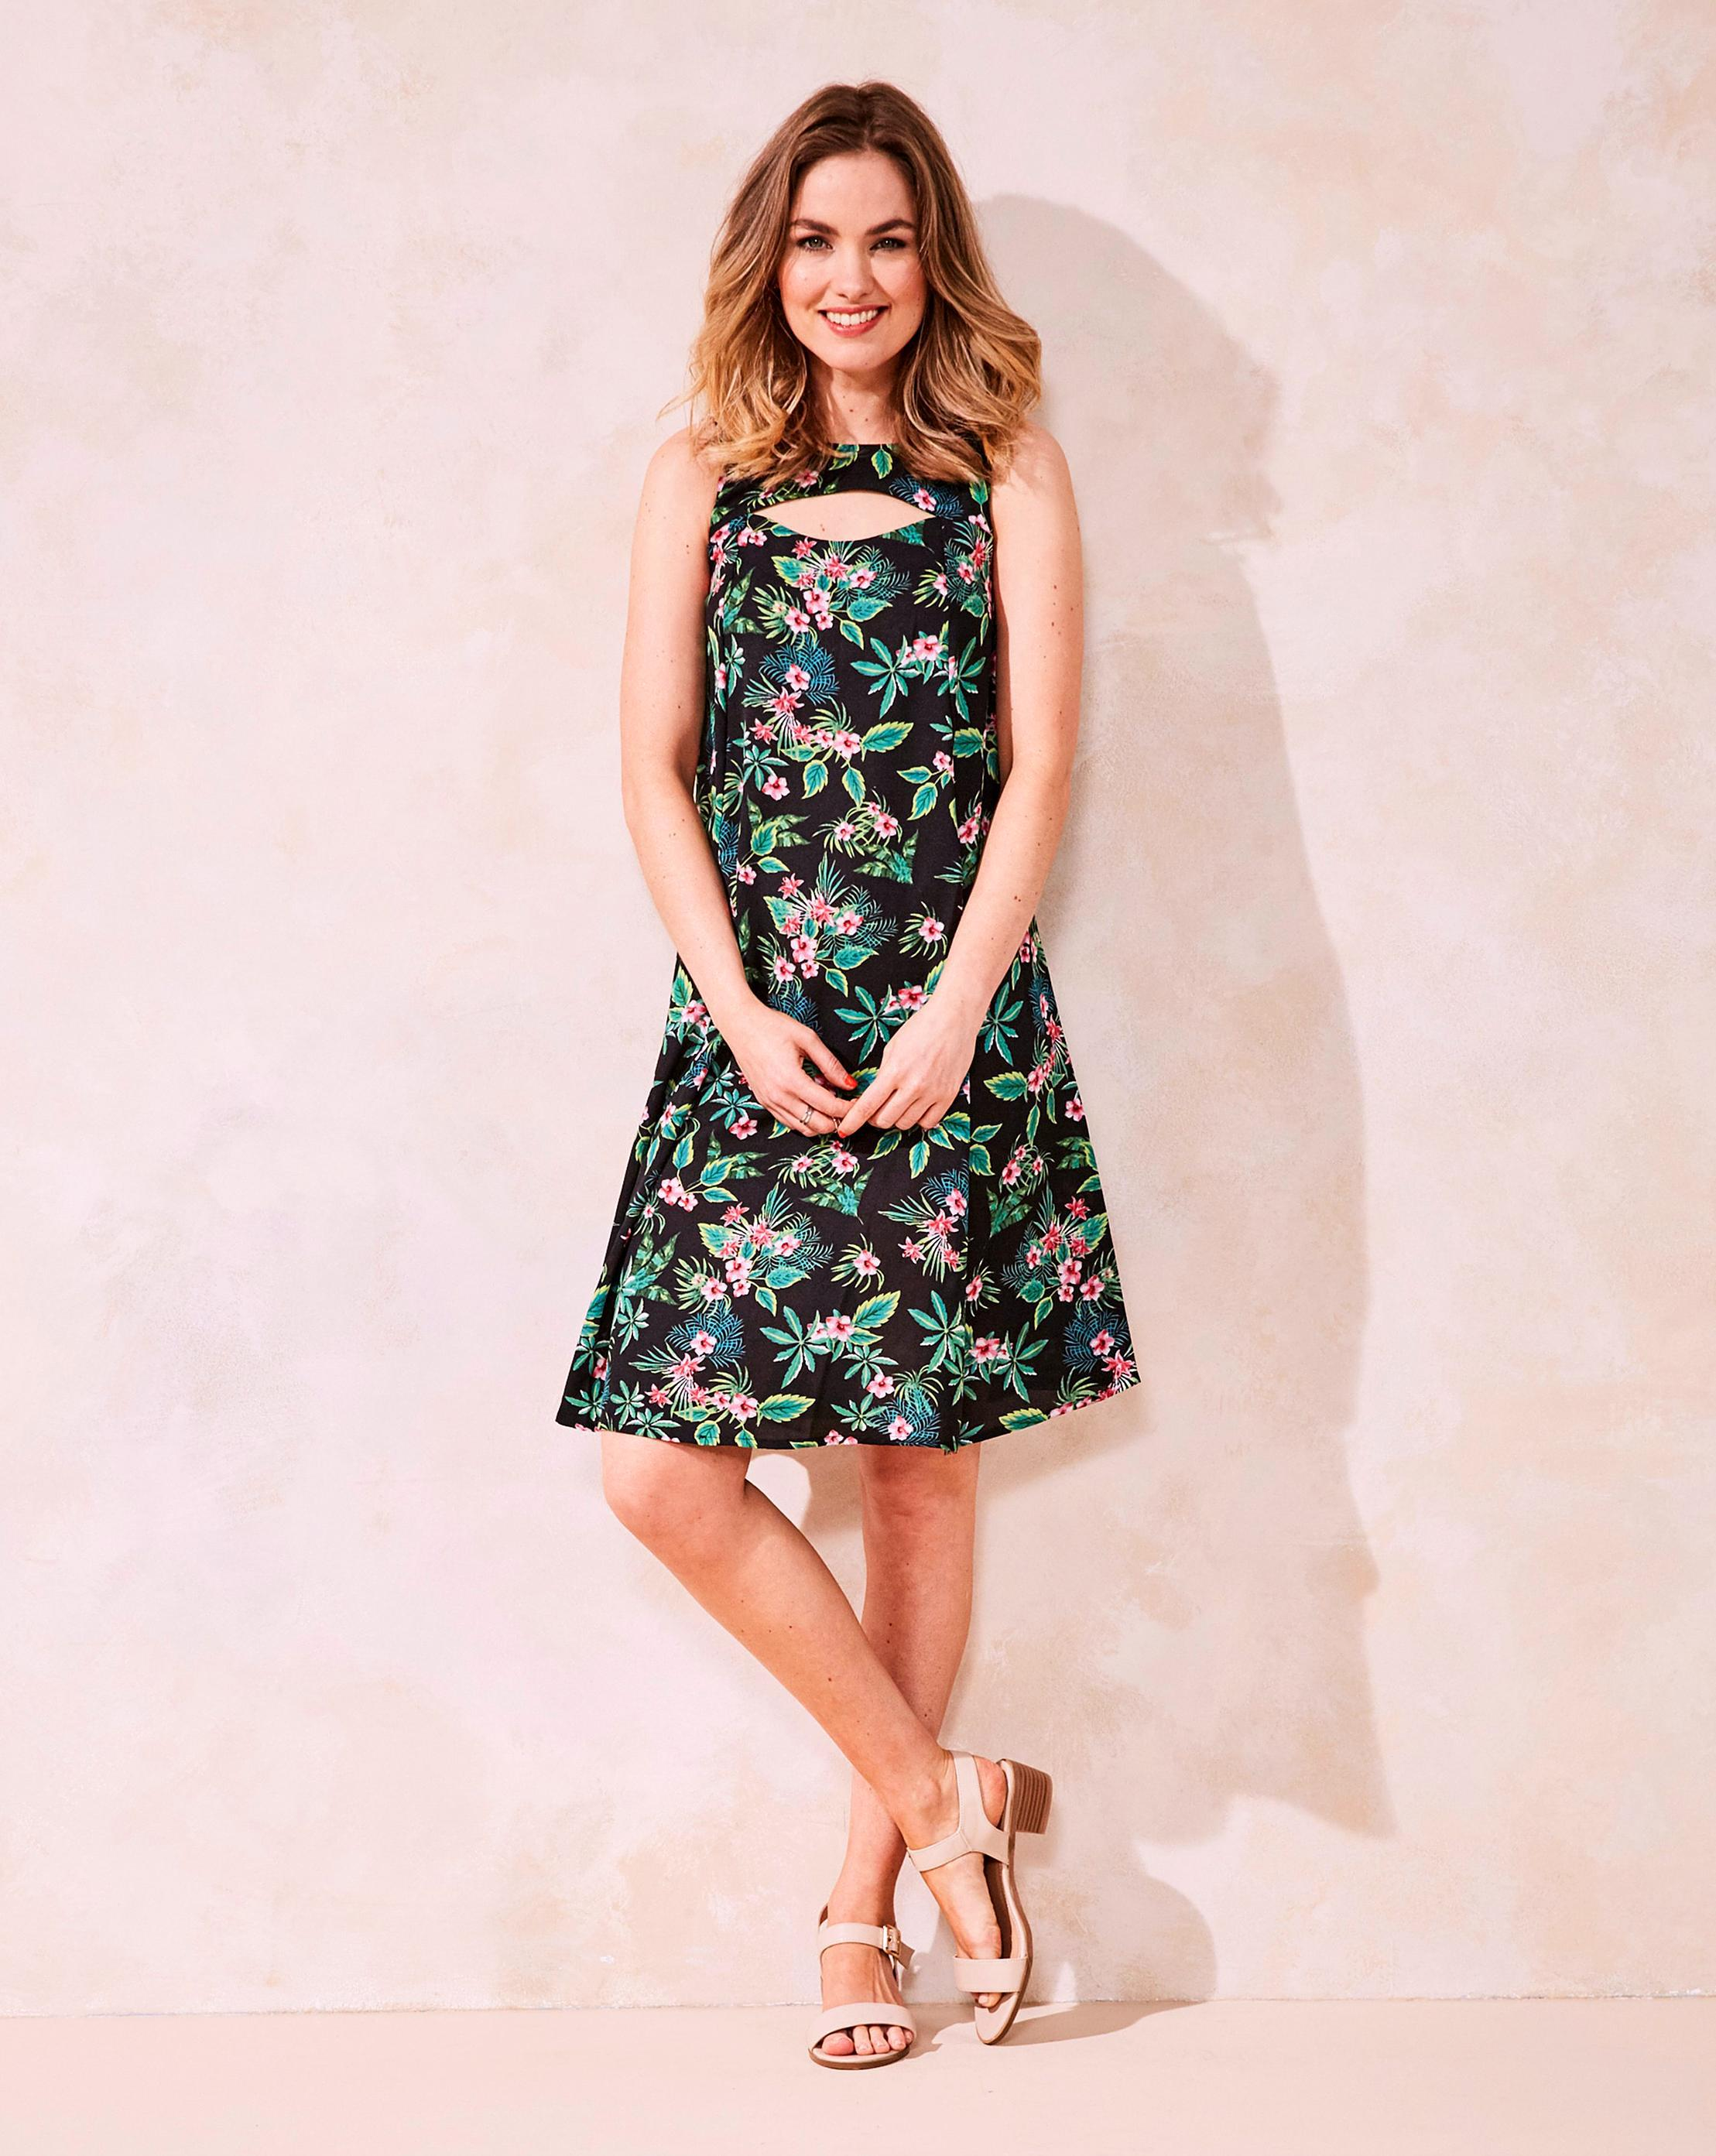 a7ca3291648d Lyst - Simply Be Green Tropical Print Cut Out Neck Swing Dress in Green